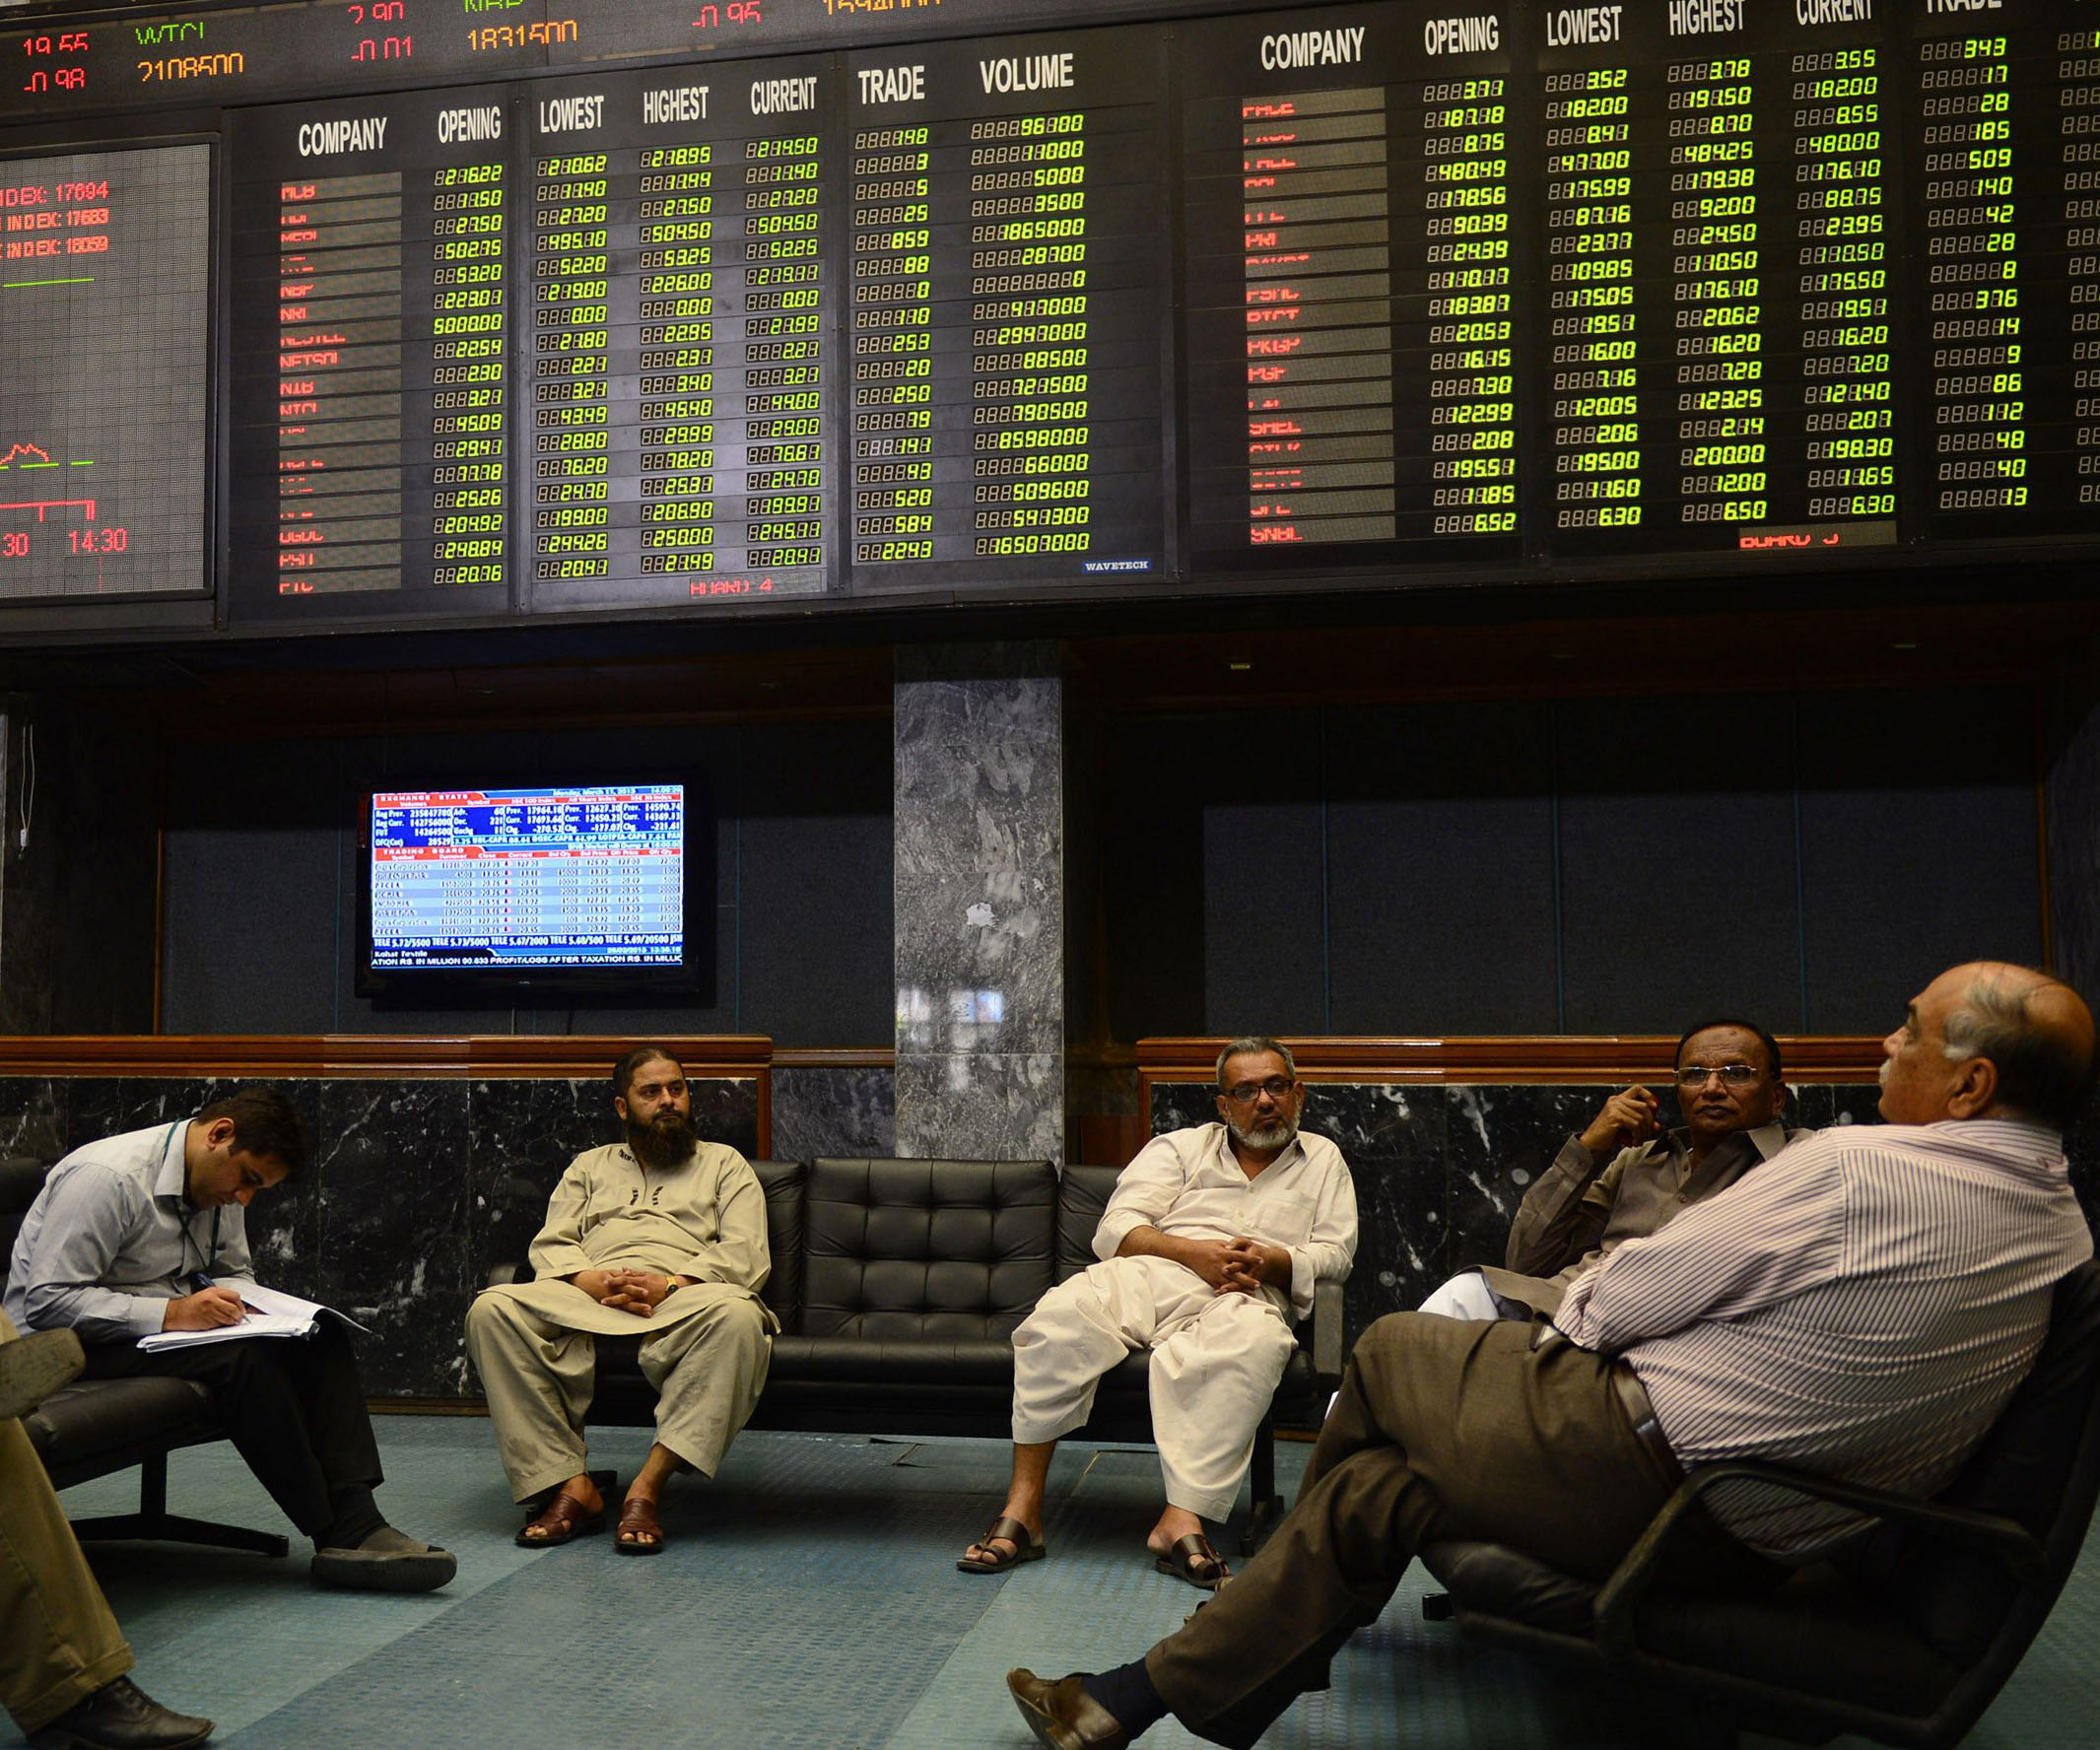 stock-market-kse-100-index-photo-afp-2-2-2-3-2-4-2-2-3-4